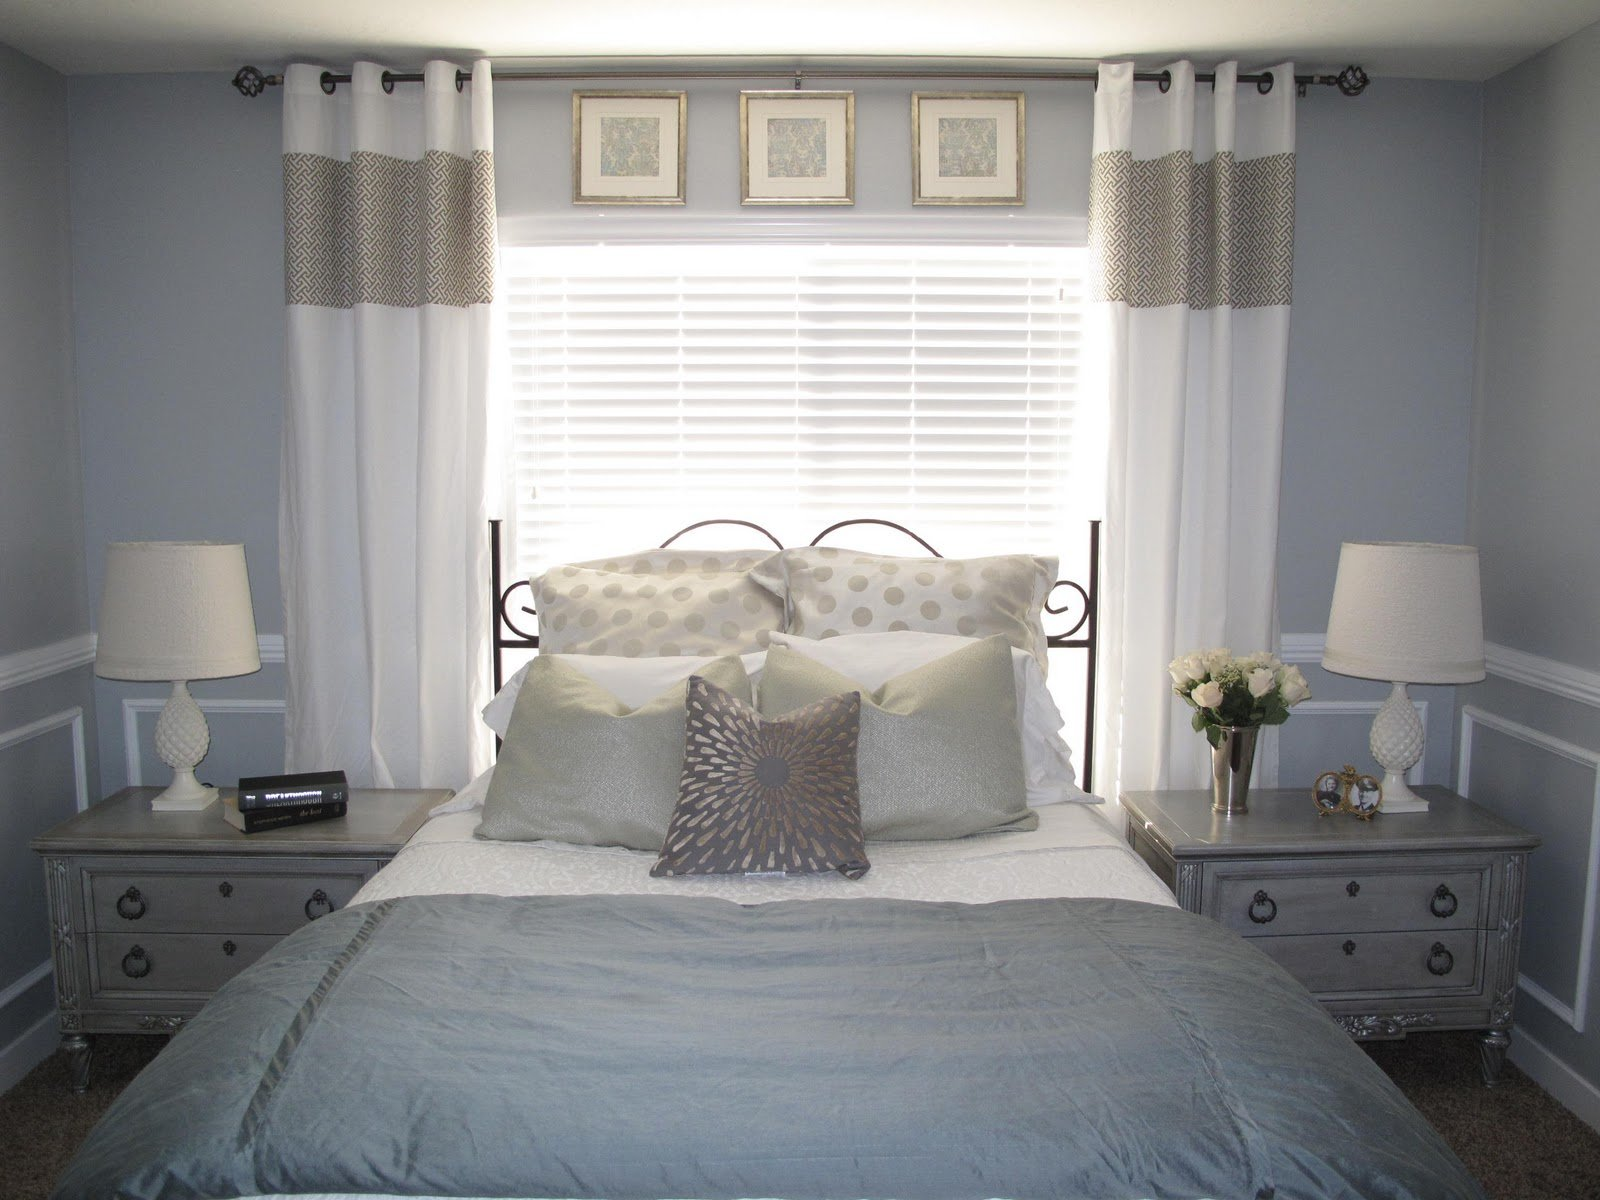 Best 1000 Images About Window Treatment Details On Pinterest With Pictures